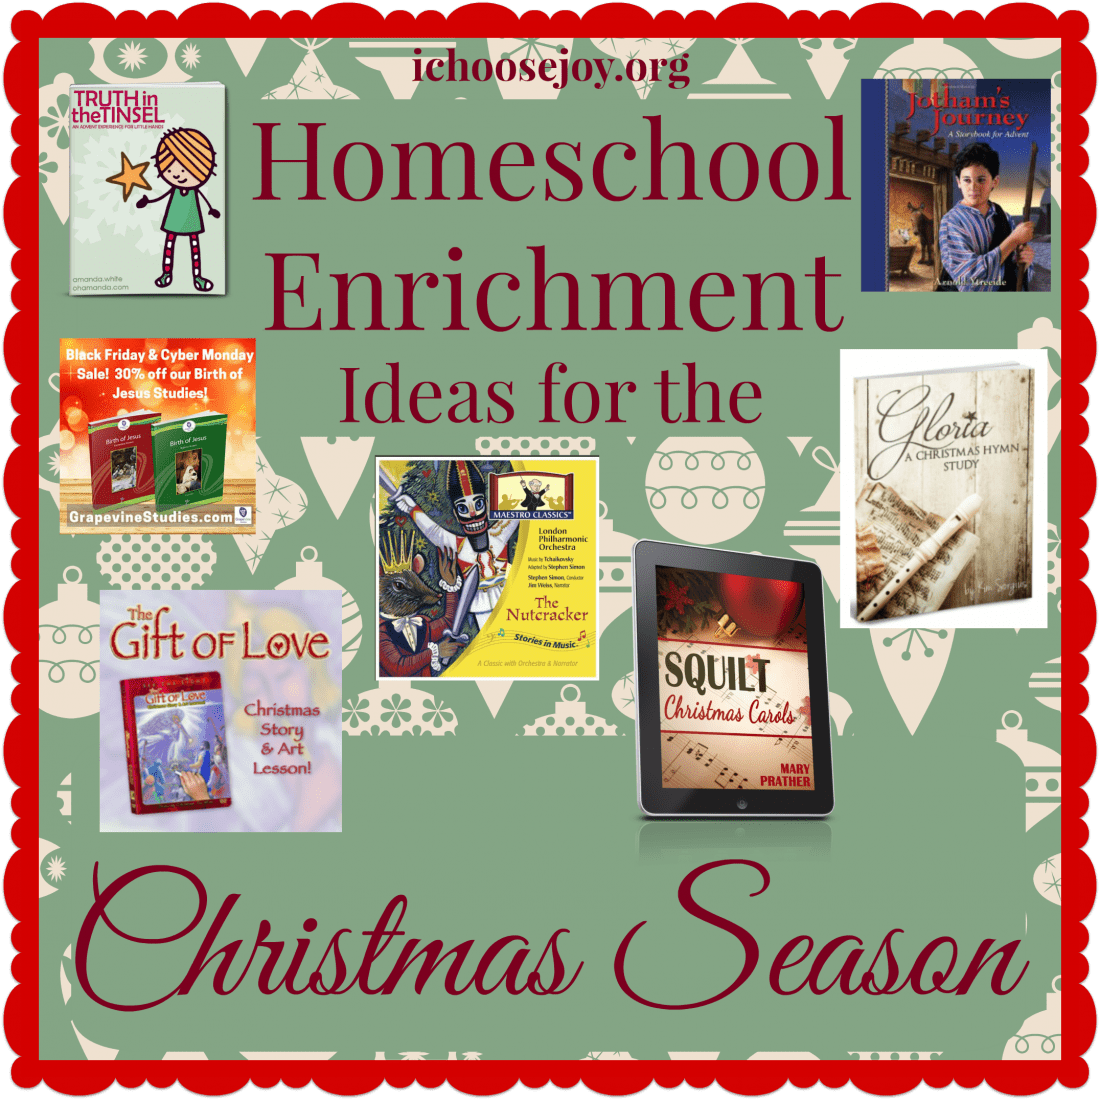 Homeschool Enrichment Ideas for the Christmas Season